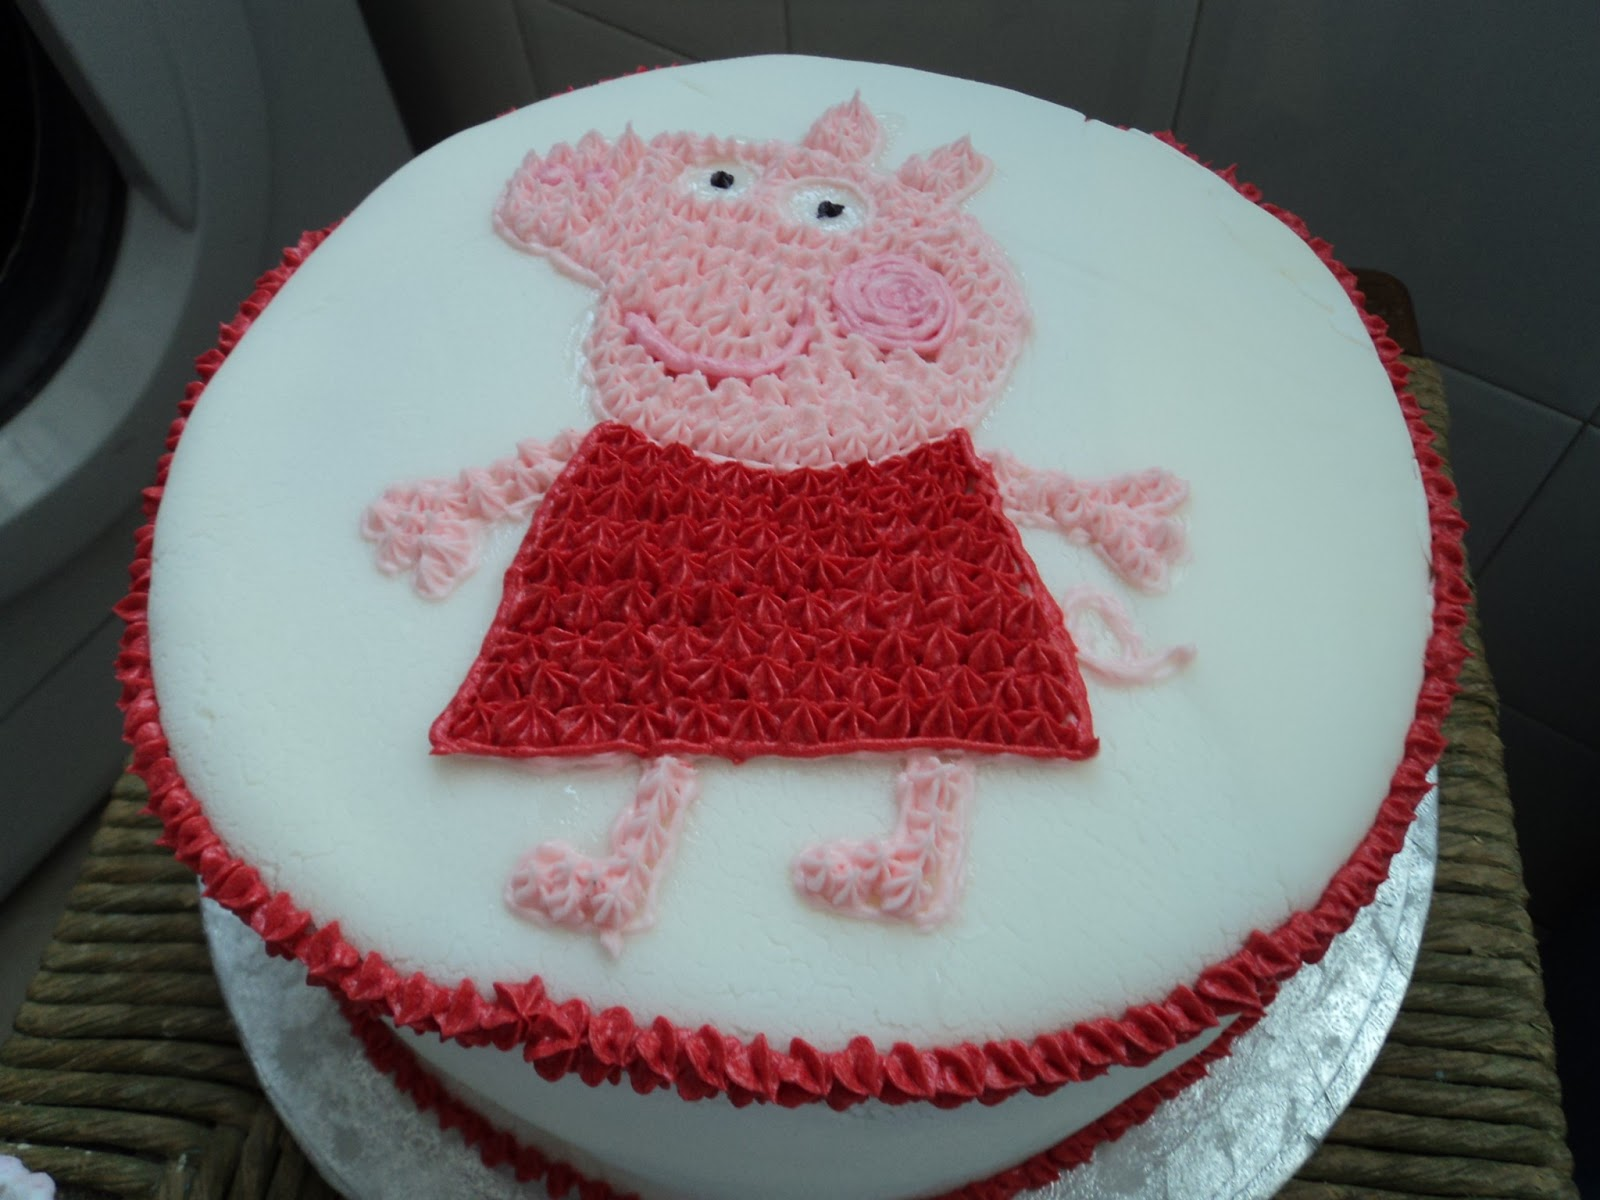 The Wandering Pit Peppa Pig Cake Some Recent Bakes